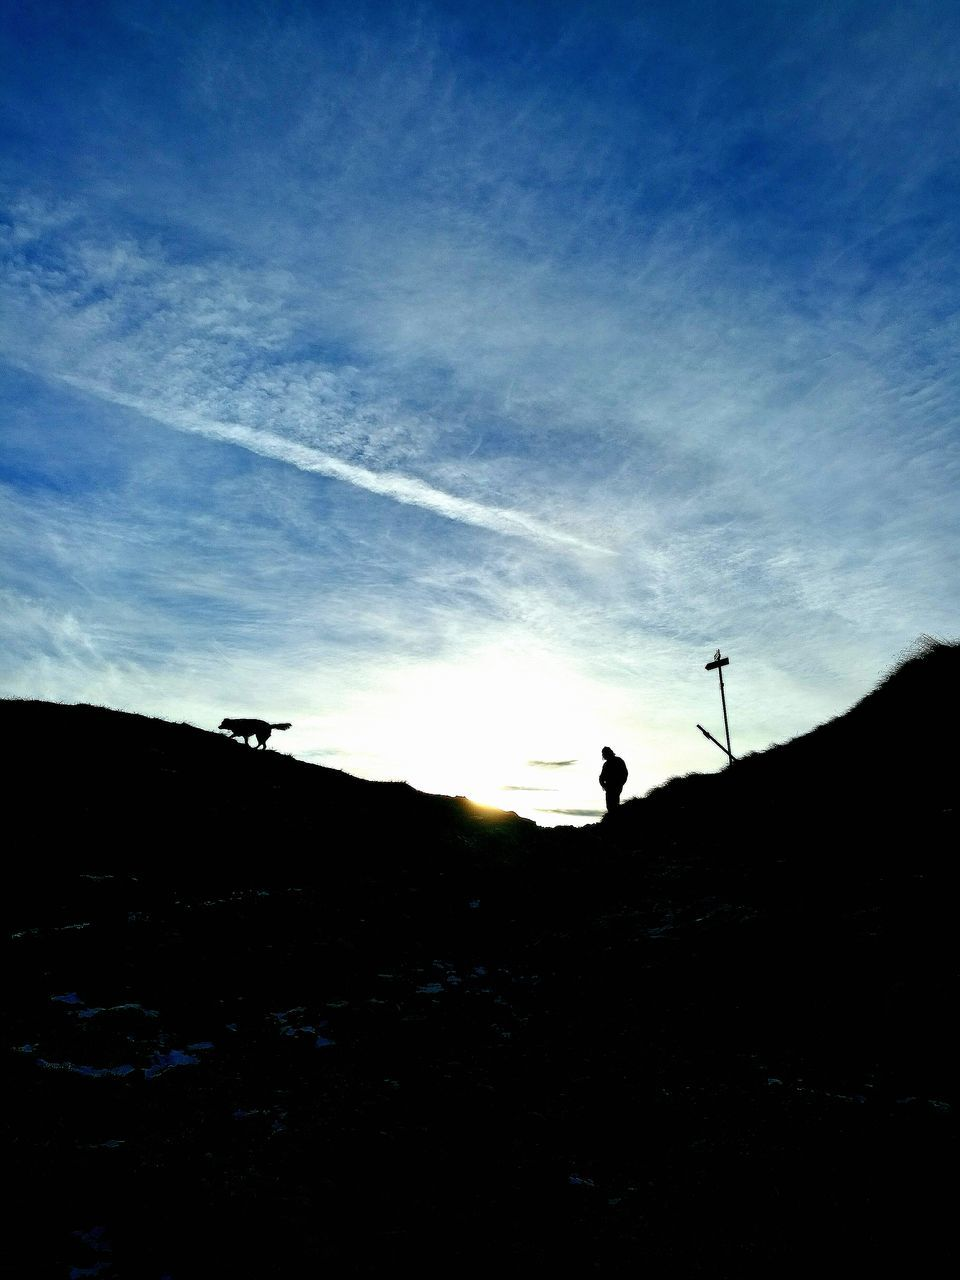 silhouette, one person, sky, leisure activity, real people, men, sunset, outdoors, sunlight, sun, lifestyles, nature, standing, day, beauty in nature, one man only, adult, people